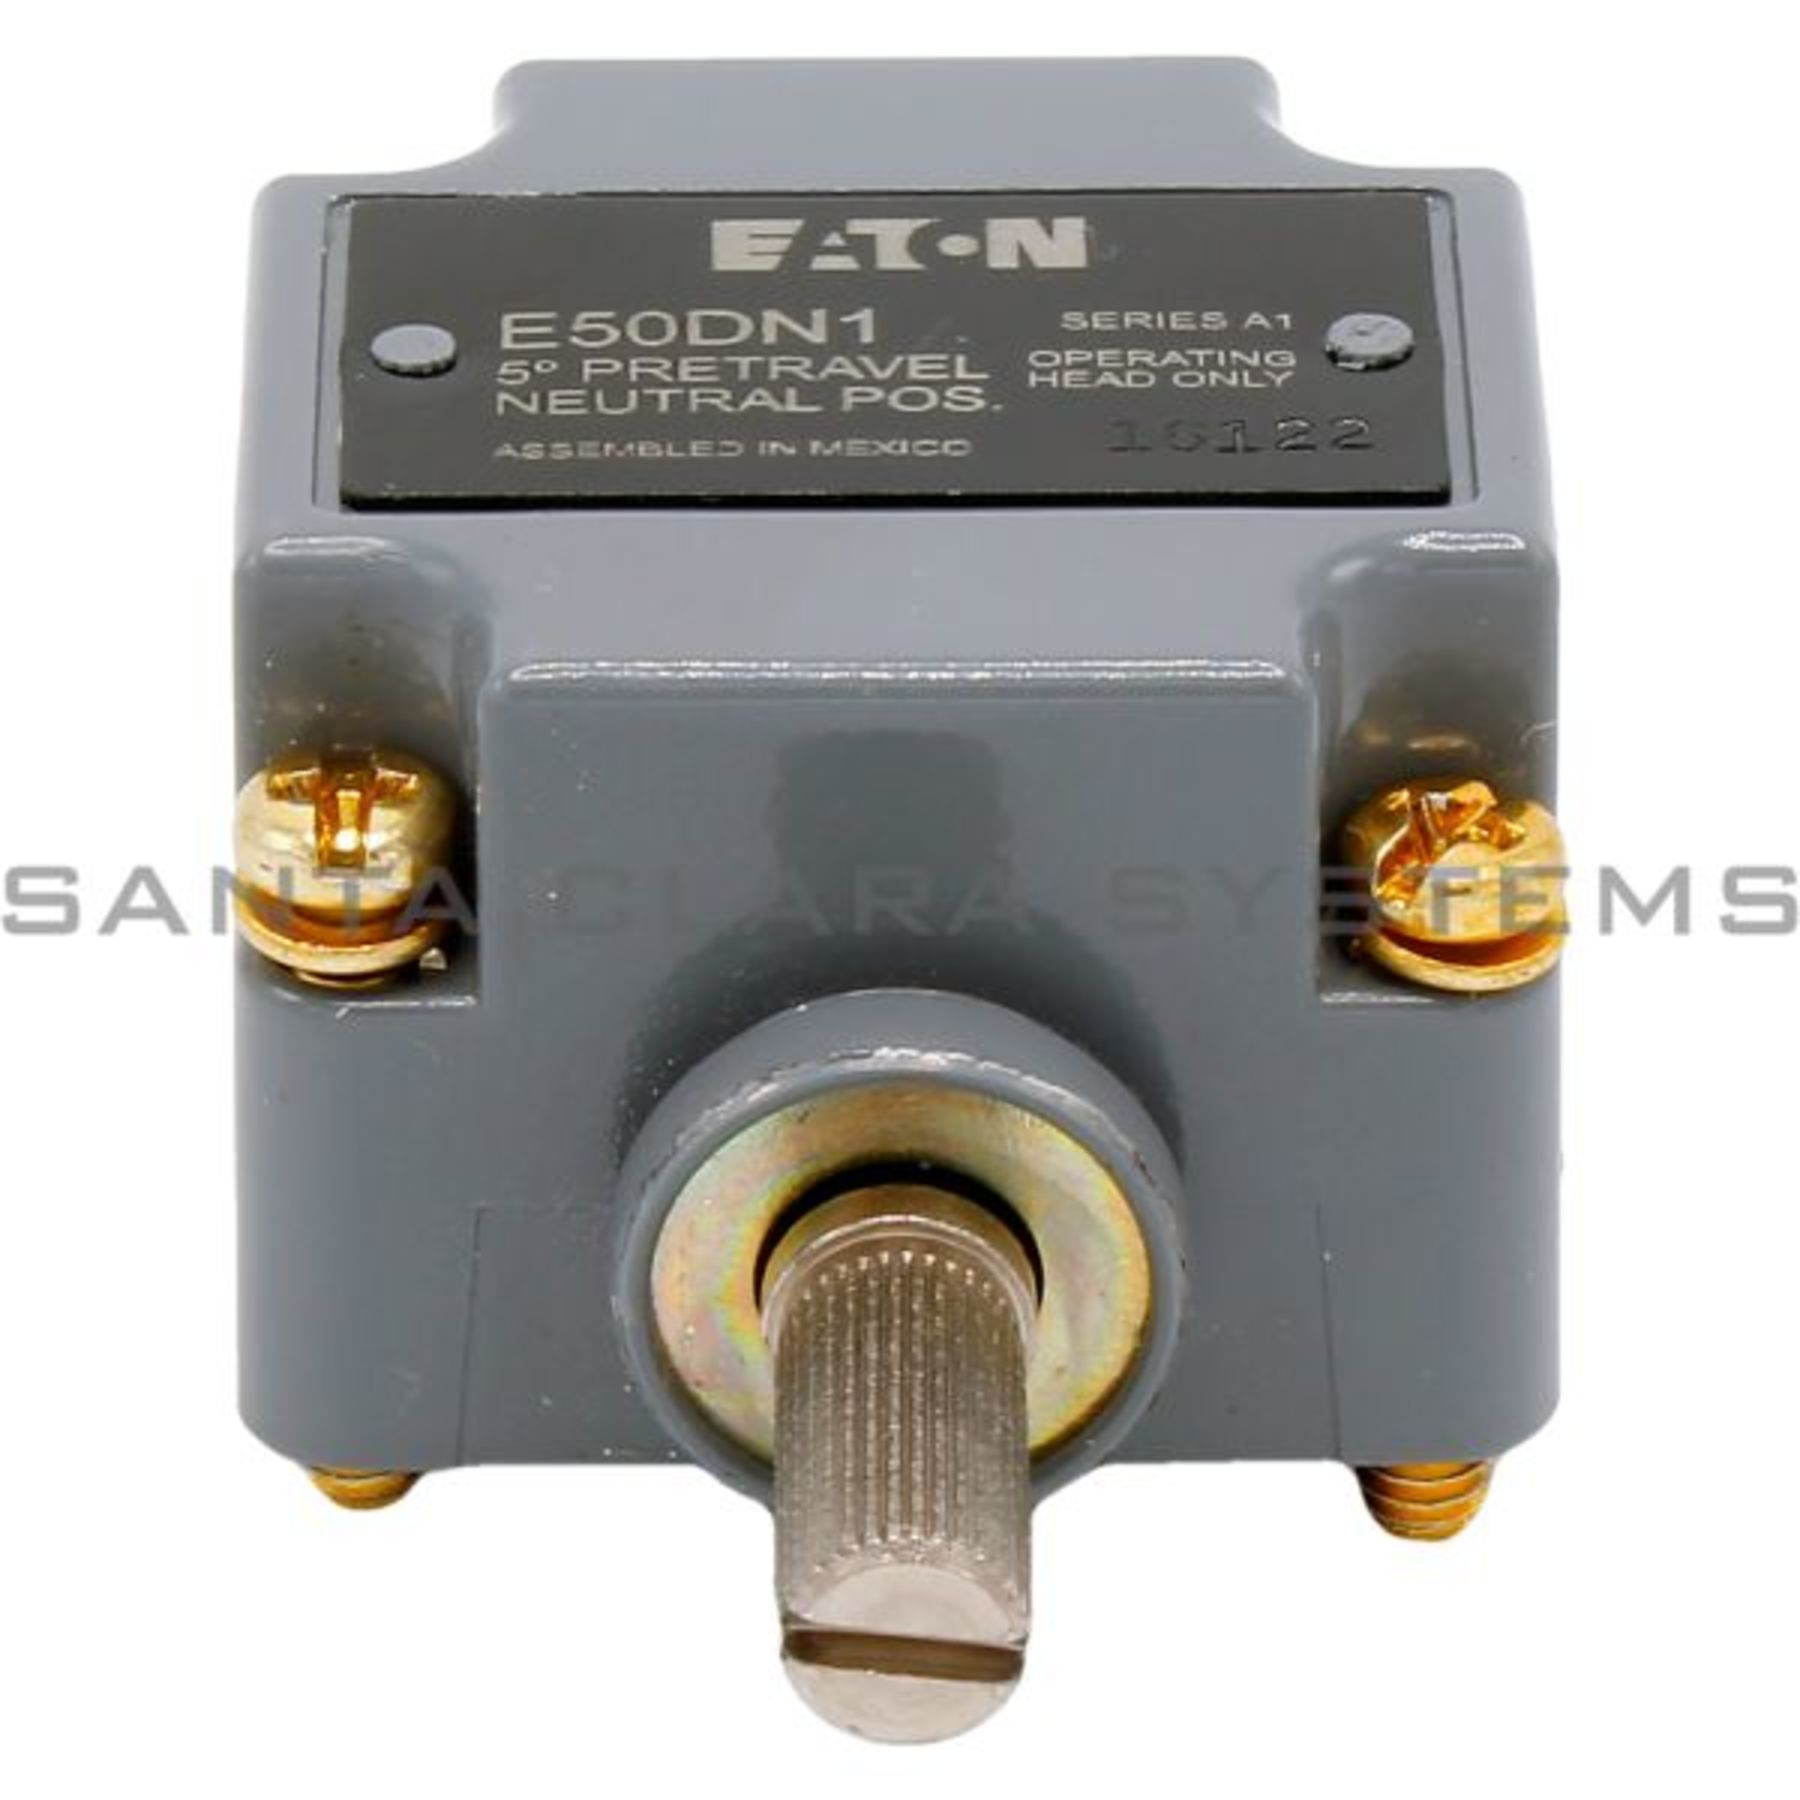 E50DN1 Limit Switch Head Only | Eaton In-Stock. Ships Today - Santa ...